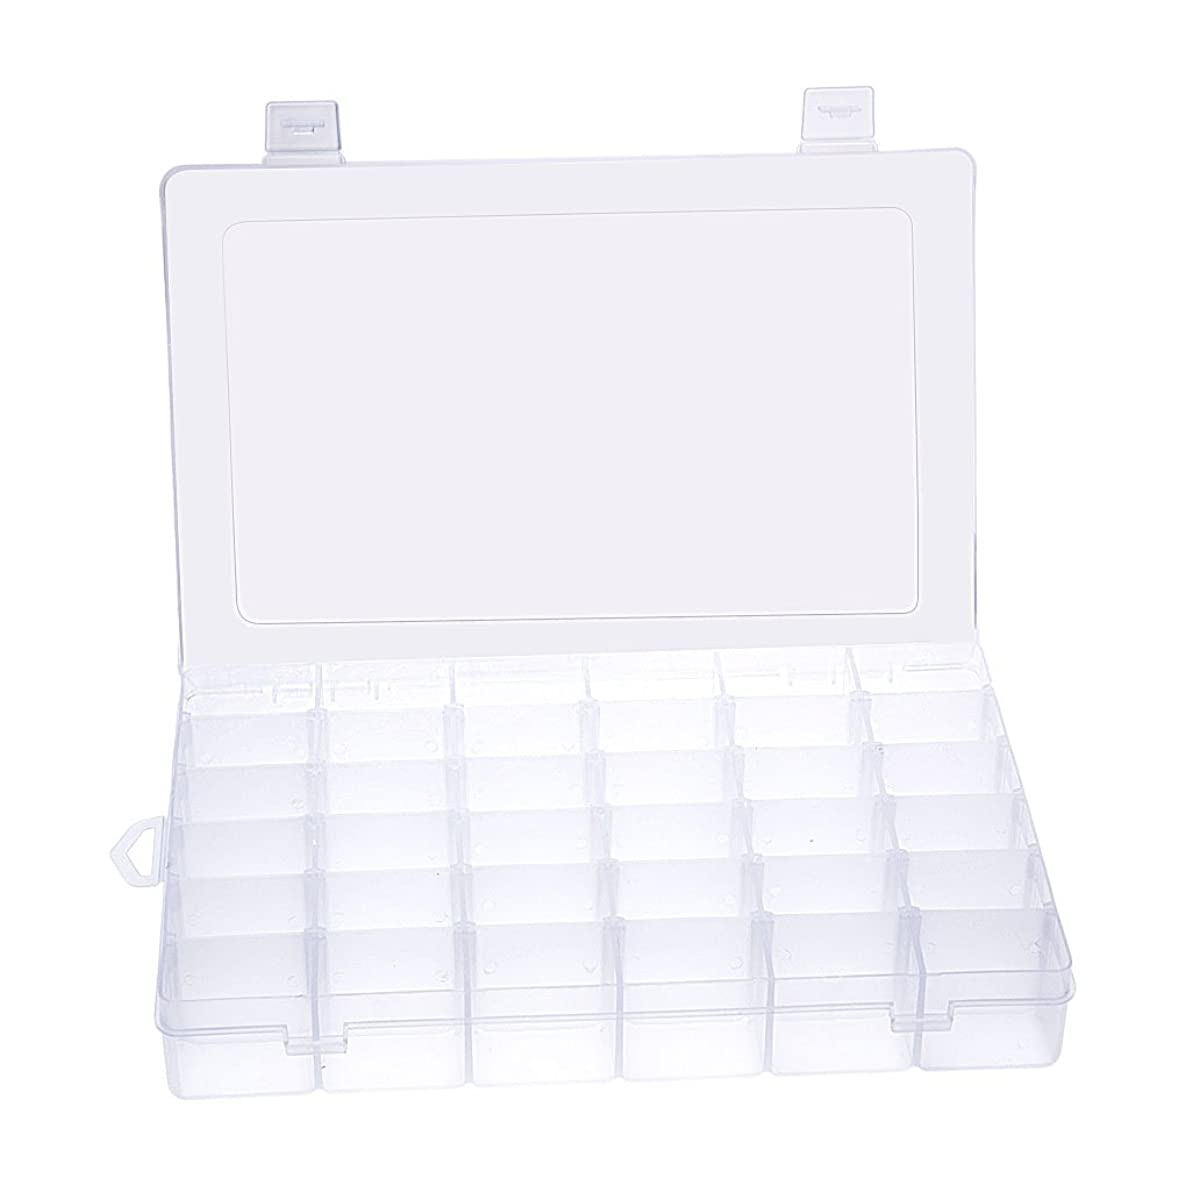 Gospire 36 Grids Clear Plastic Jewelry Box Organizer Storage Container with Removable Dividers